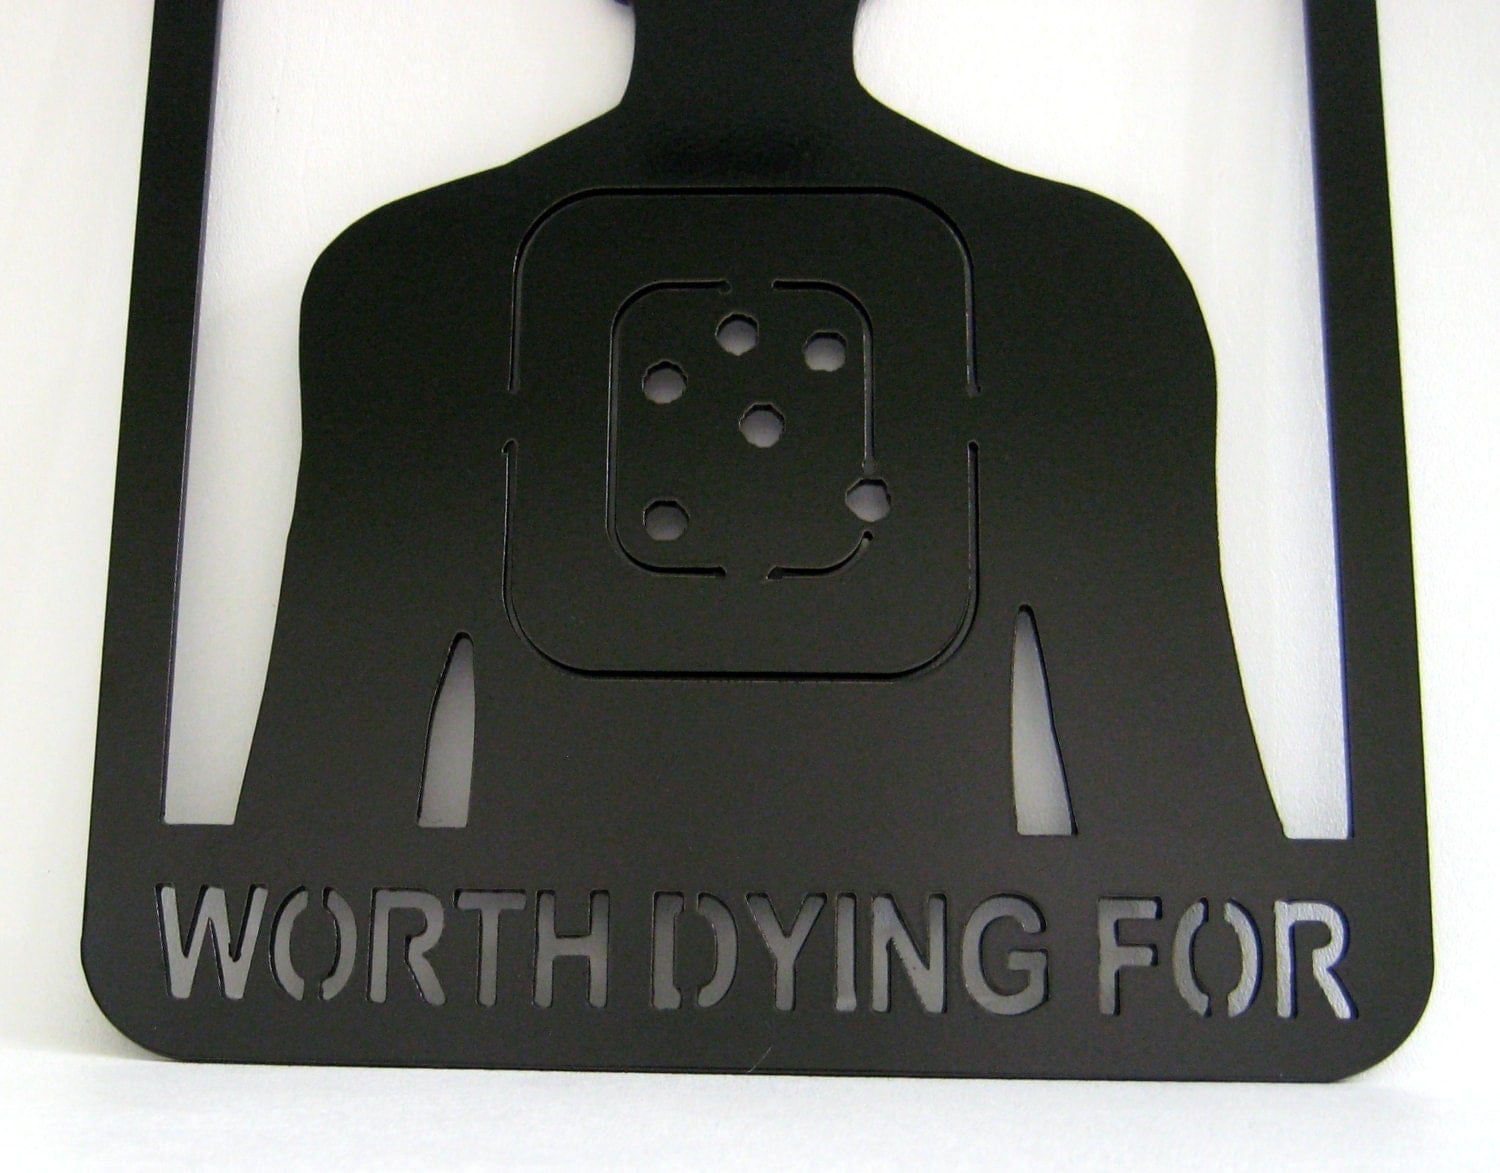 Nothing Inside Worth Dying For Home Security By